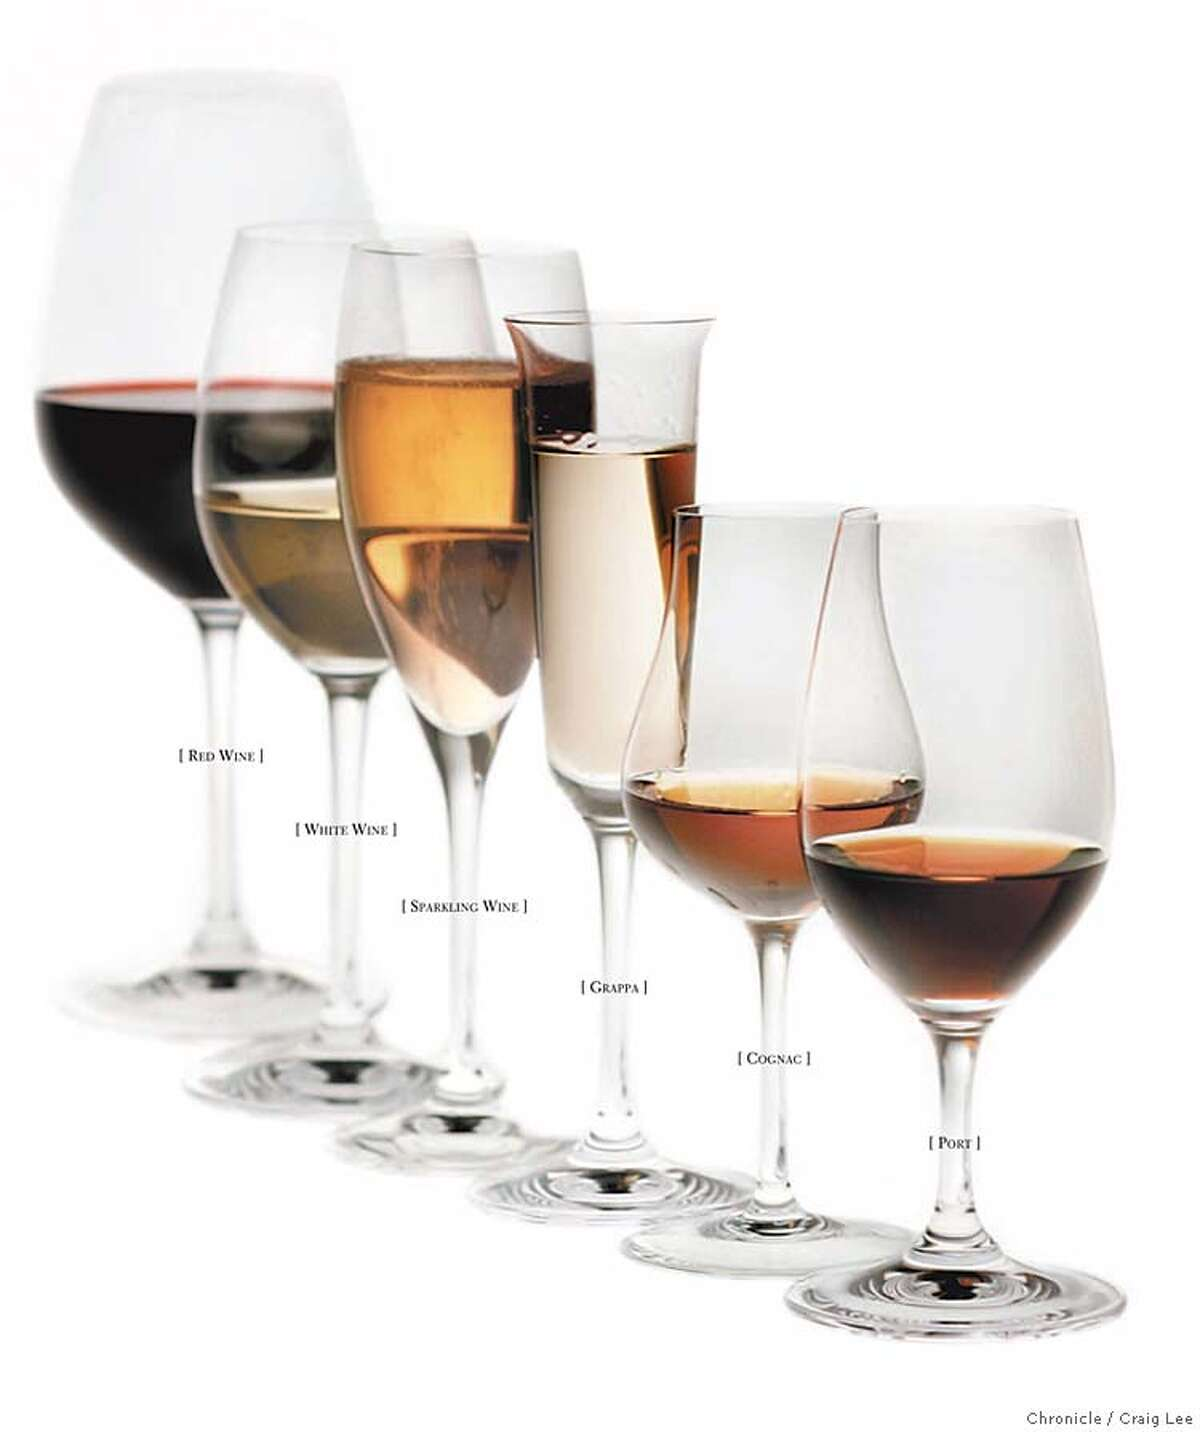 The shape of a wineglass affects the way the wine tastes, in part by concentrating the flavors on different parts of the tongue. Chronicle photo by Craig Lee